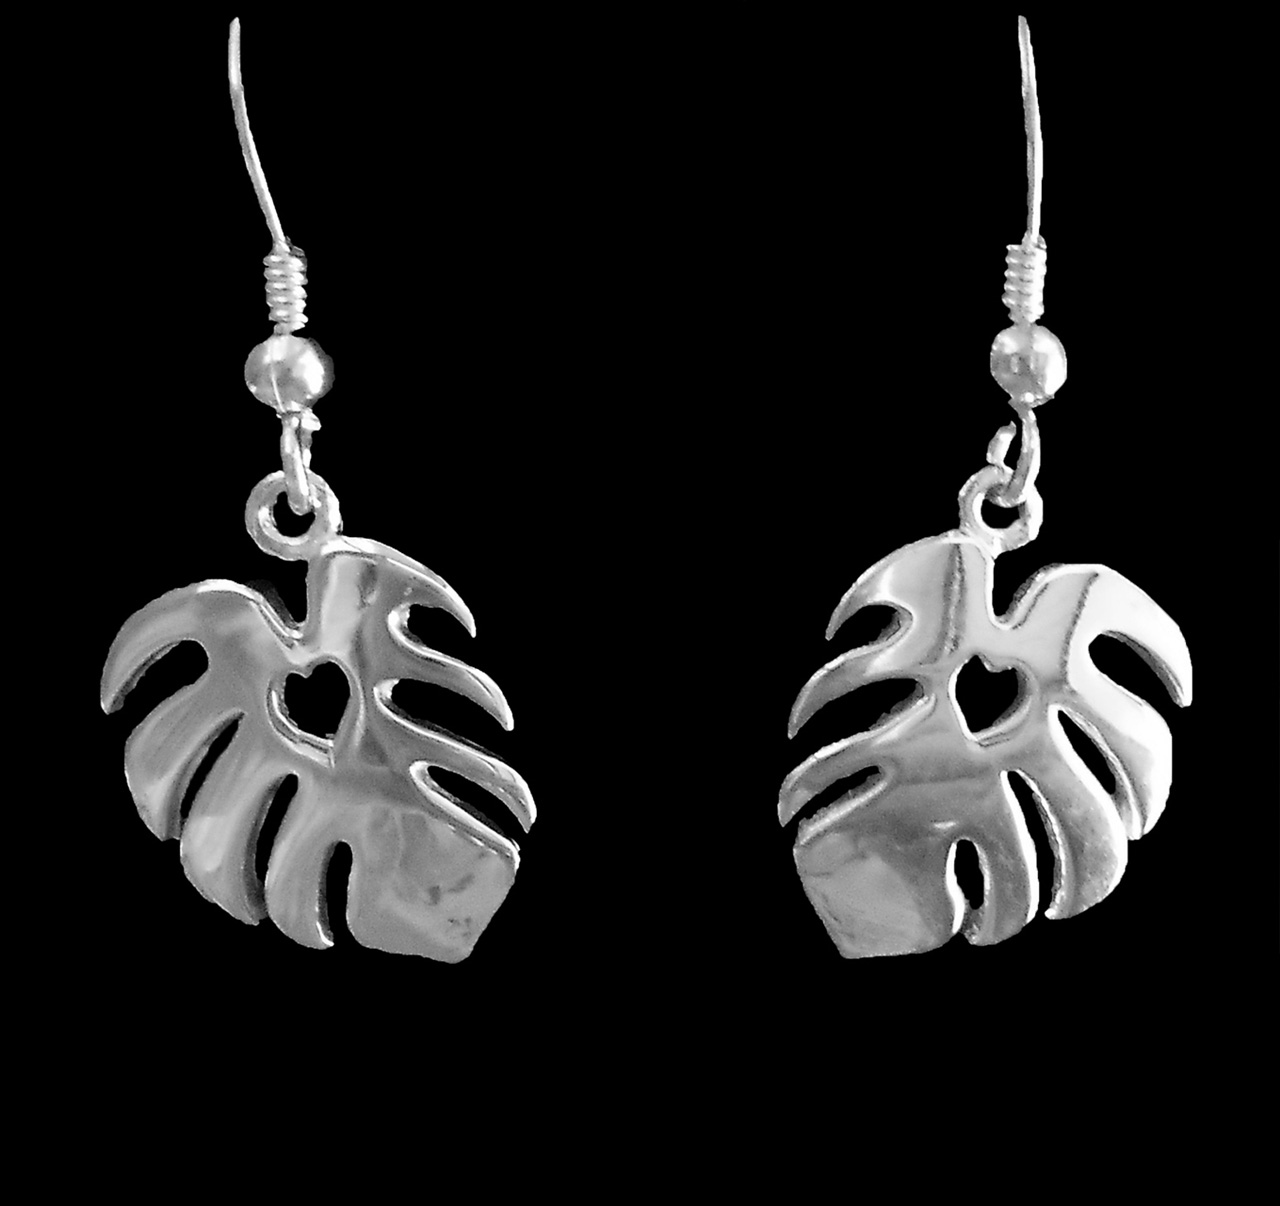 sterling silver earrings of monstera leafs with heart cutout centers